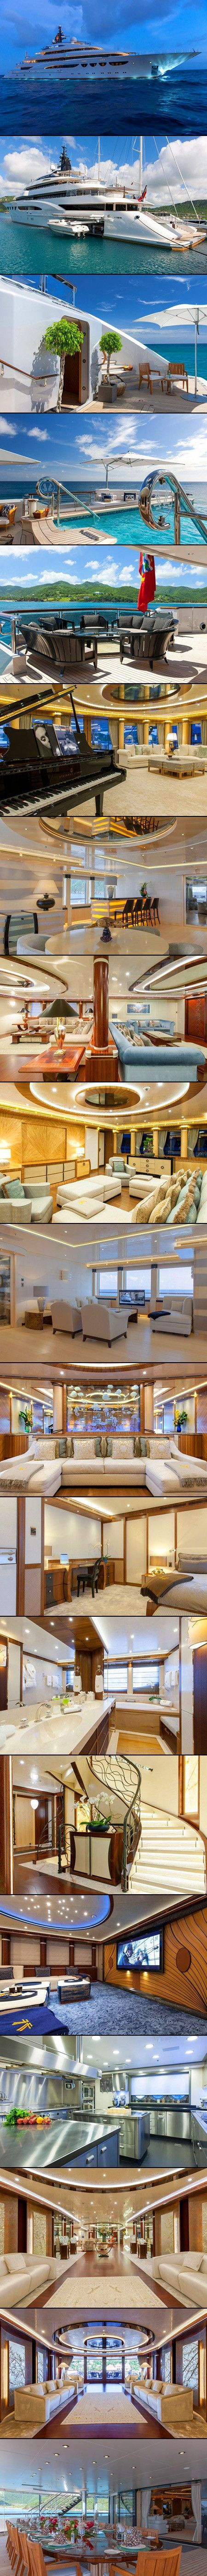 luxury yachts for sale 15 best photos 61173eae4591efd6a5811847487dff95